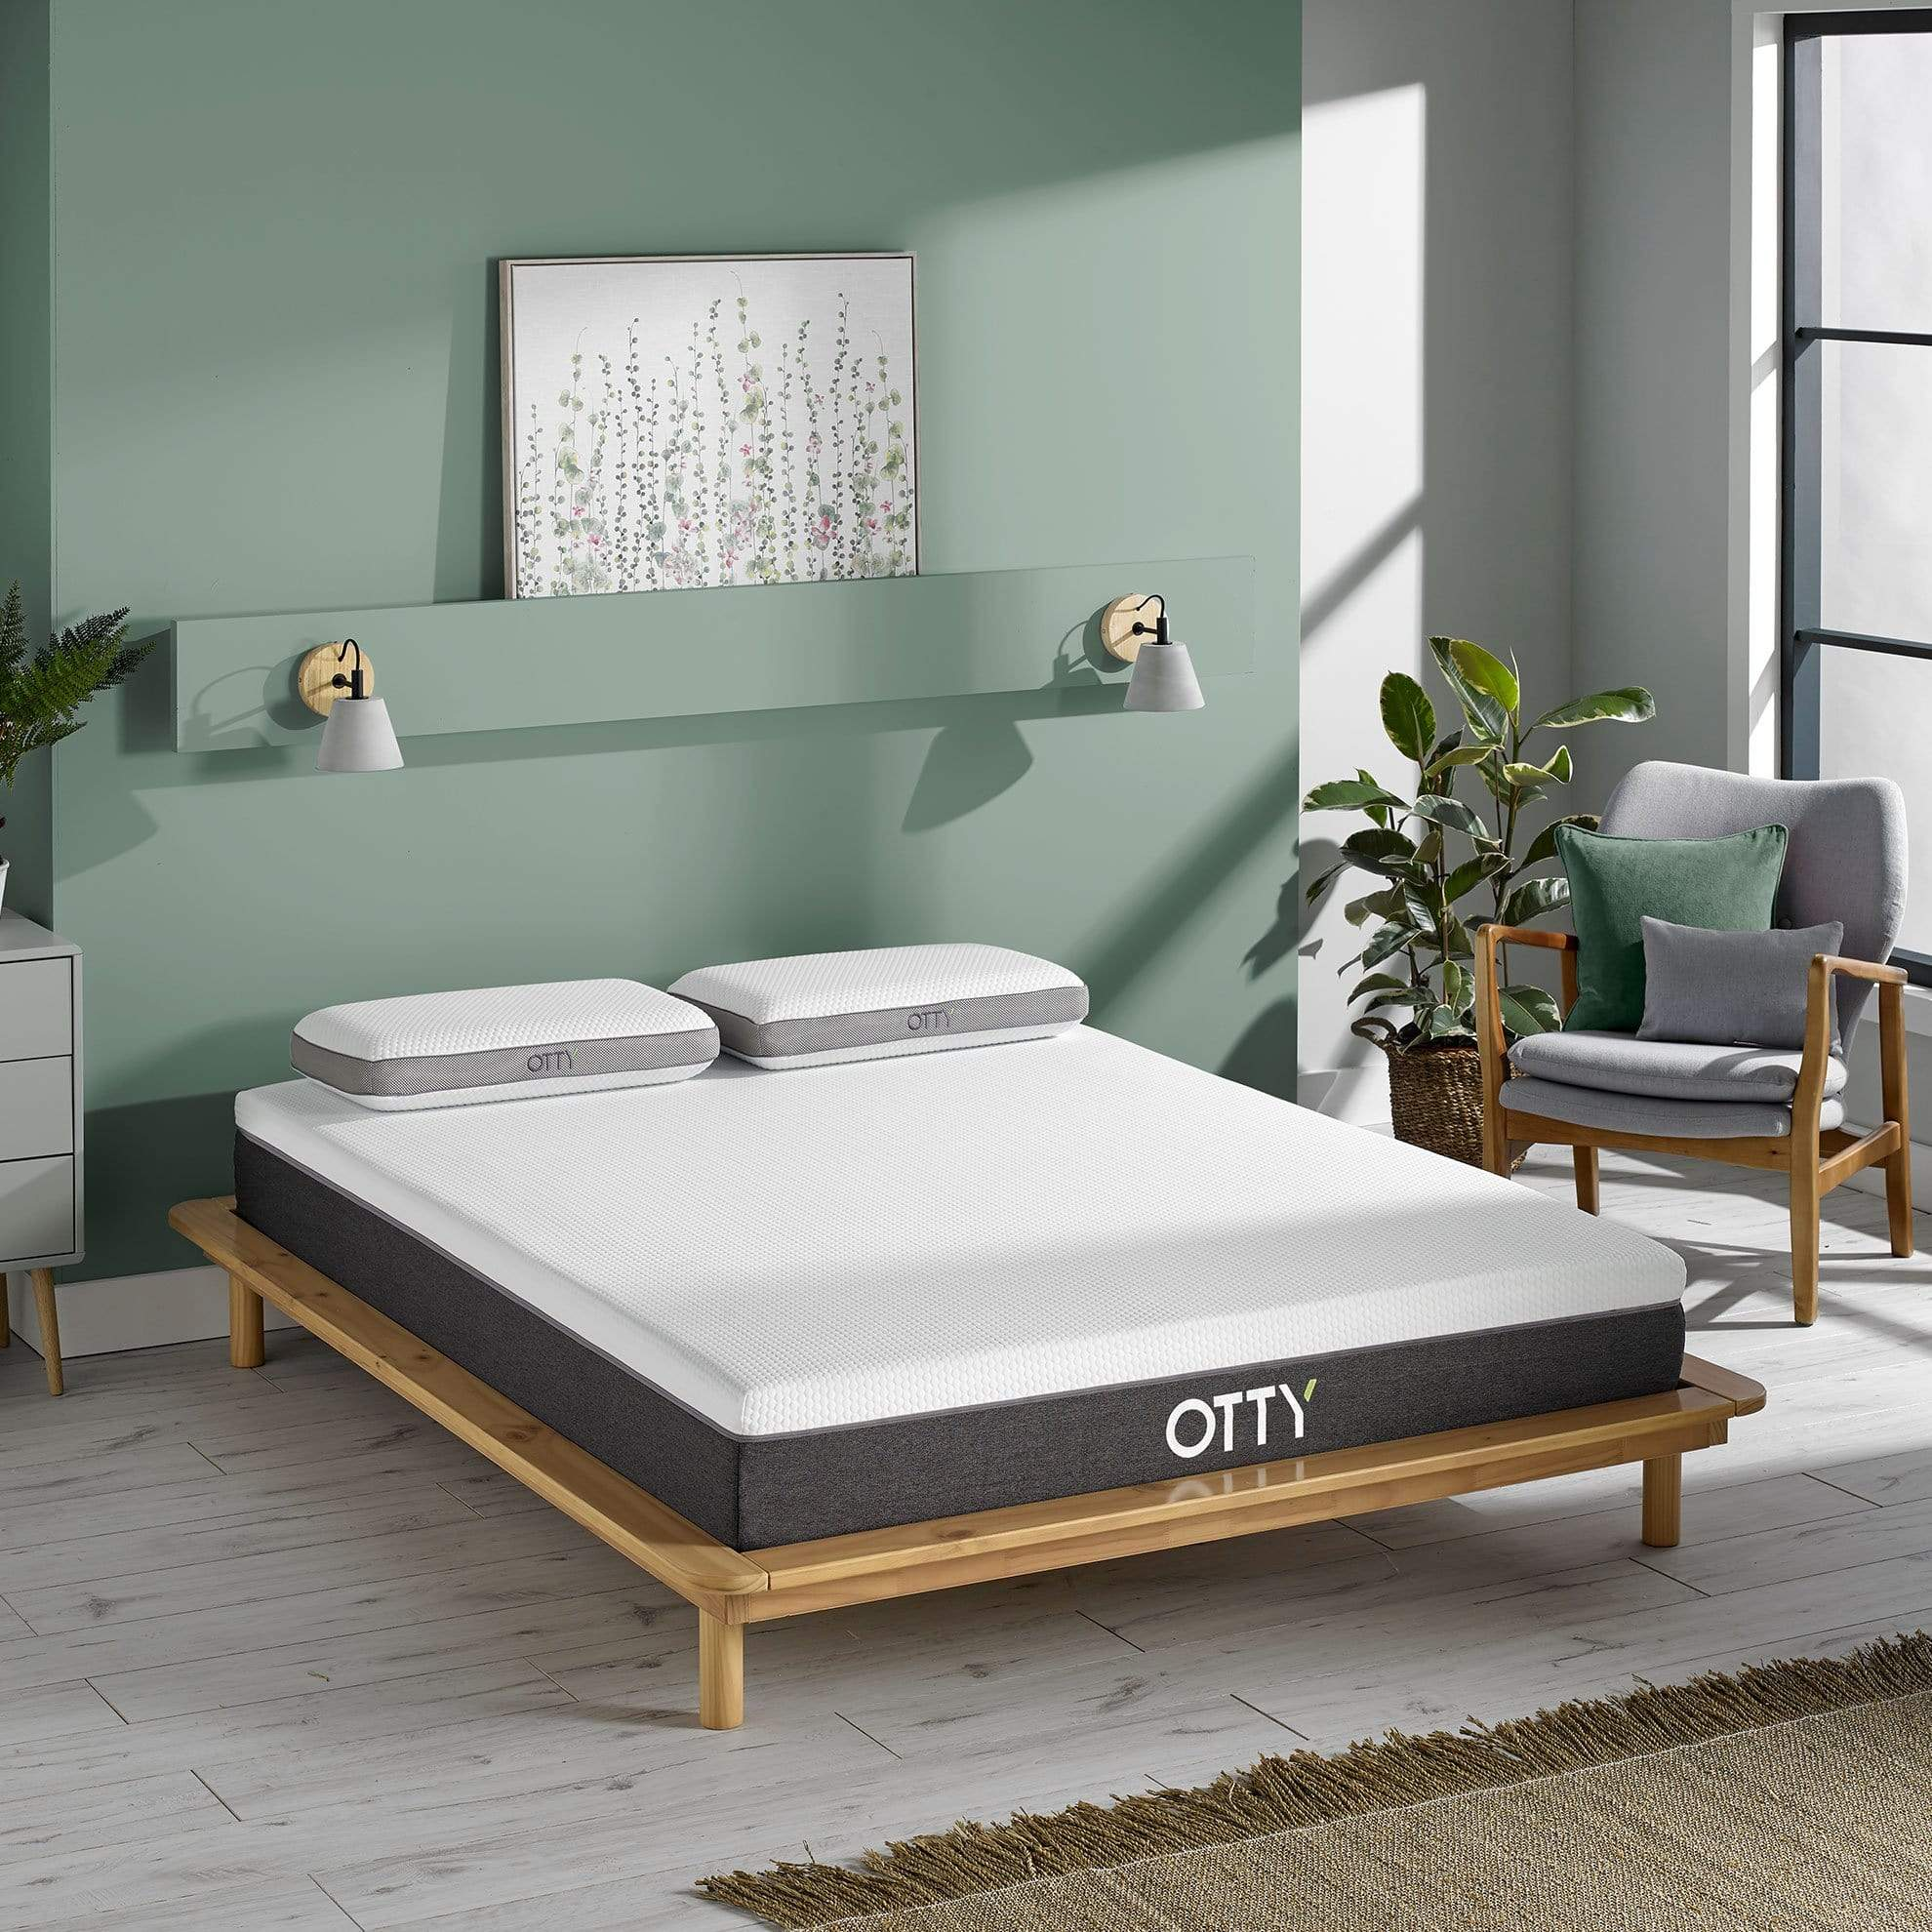 OTTY's Aura Hybrid Mattress is the perfect combination of spring and foam